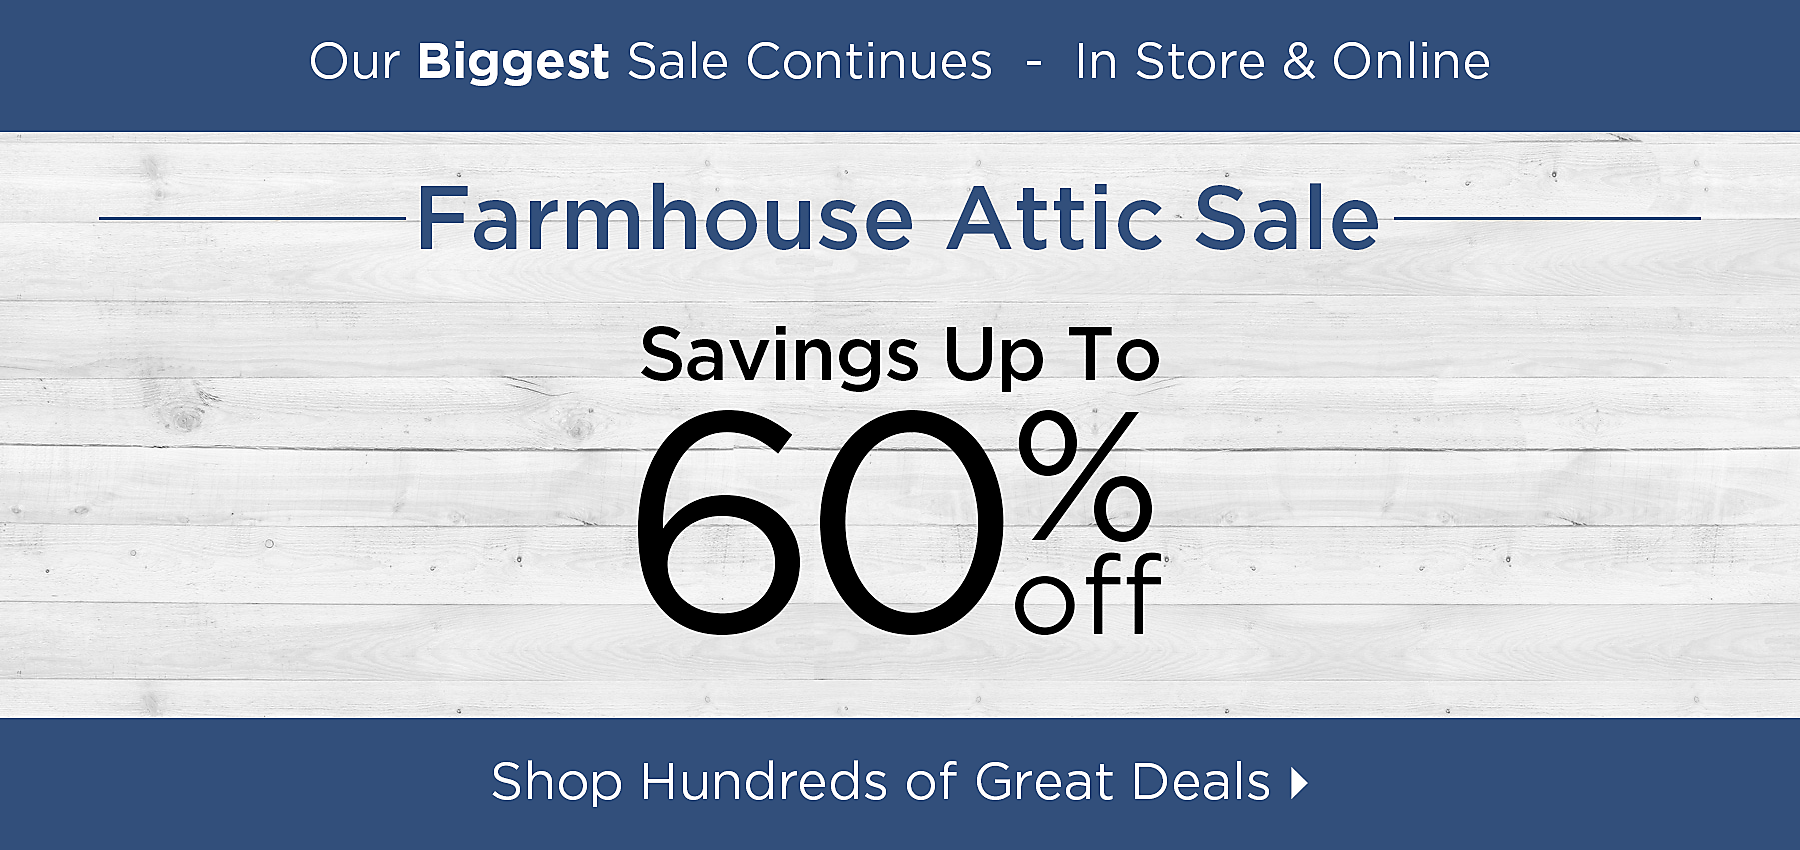 Our biggest sale continues - In store and online - Farmhouse Attic Sale - Savings up to 60% off- Shop Hundreds of Great Deals